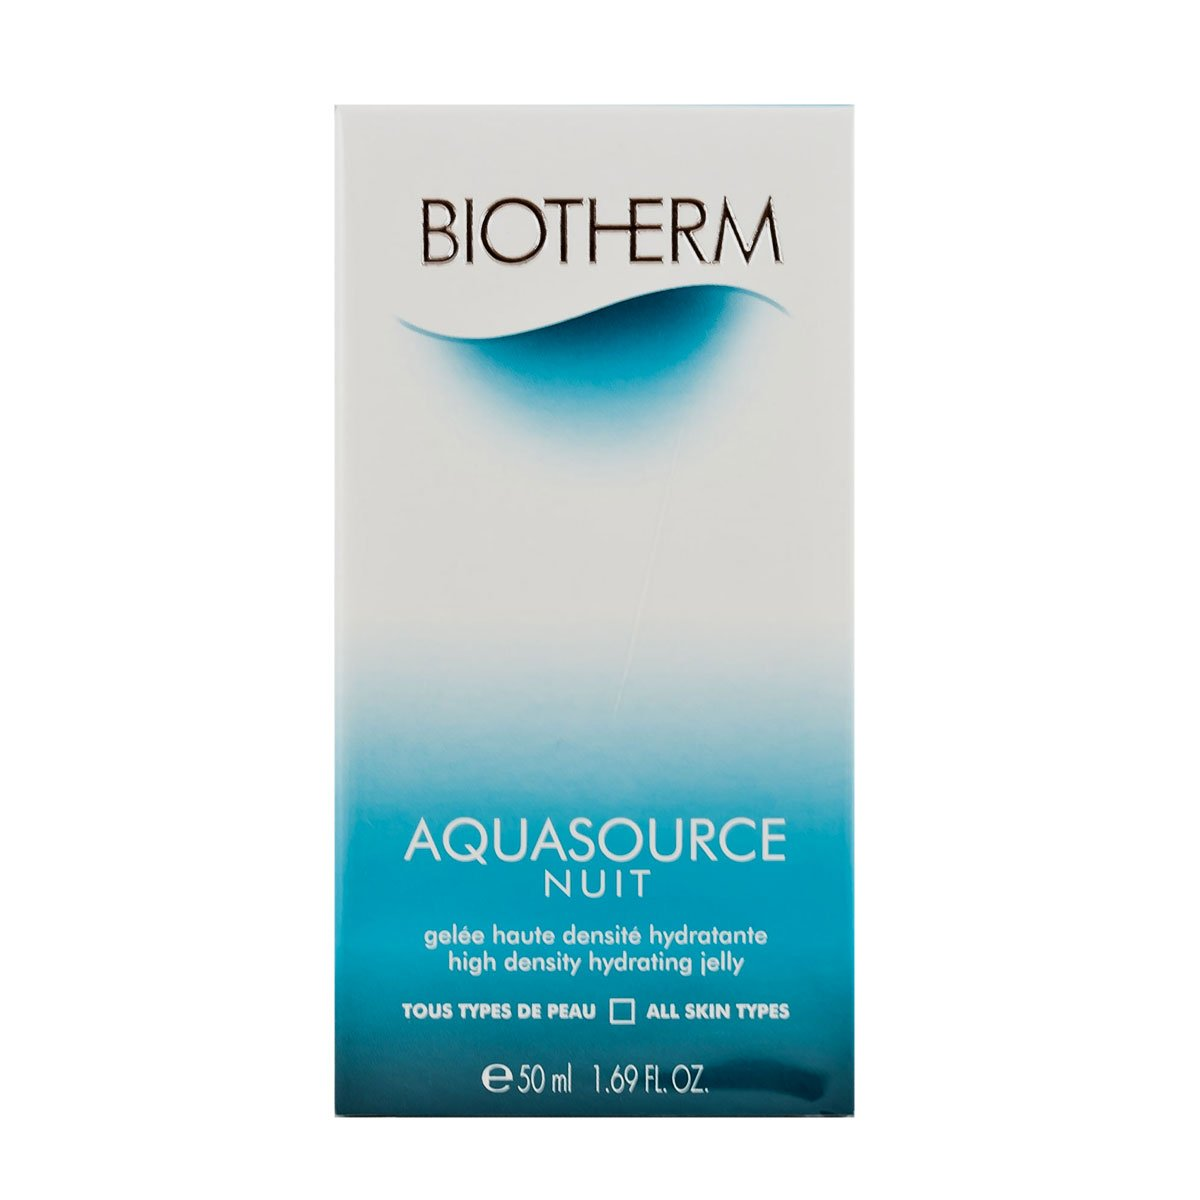 Biotherm Aquasource Nuit Hydrating Jelly Night Cream-All Skin Types for Unisex, 1.69-Ounce 3605540783351 BIO00022_-50ml